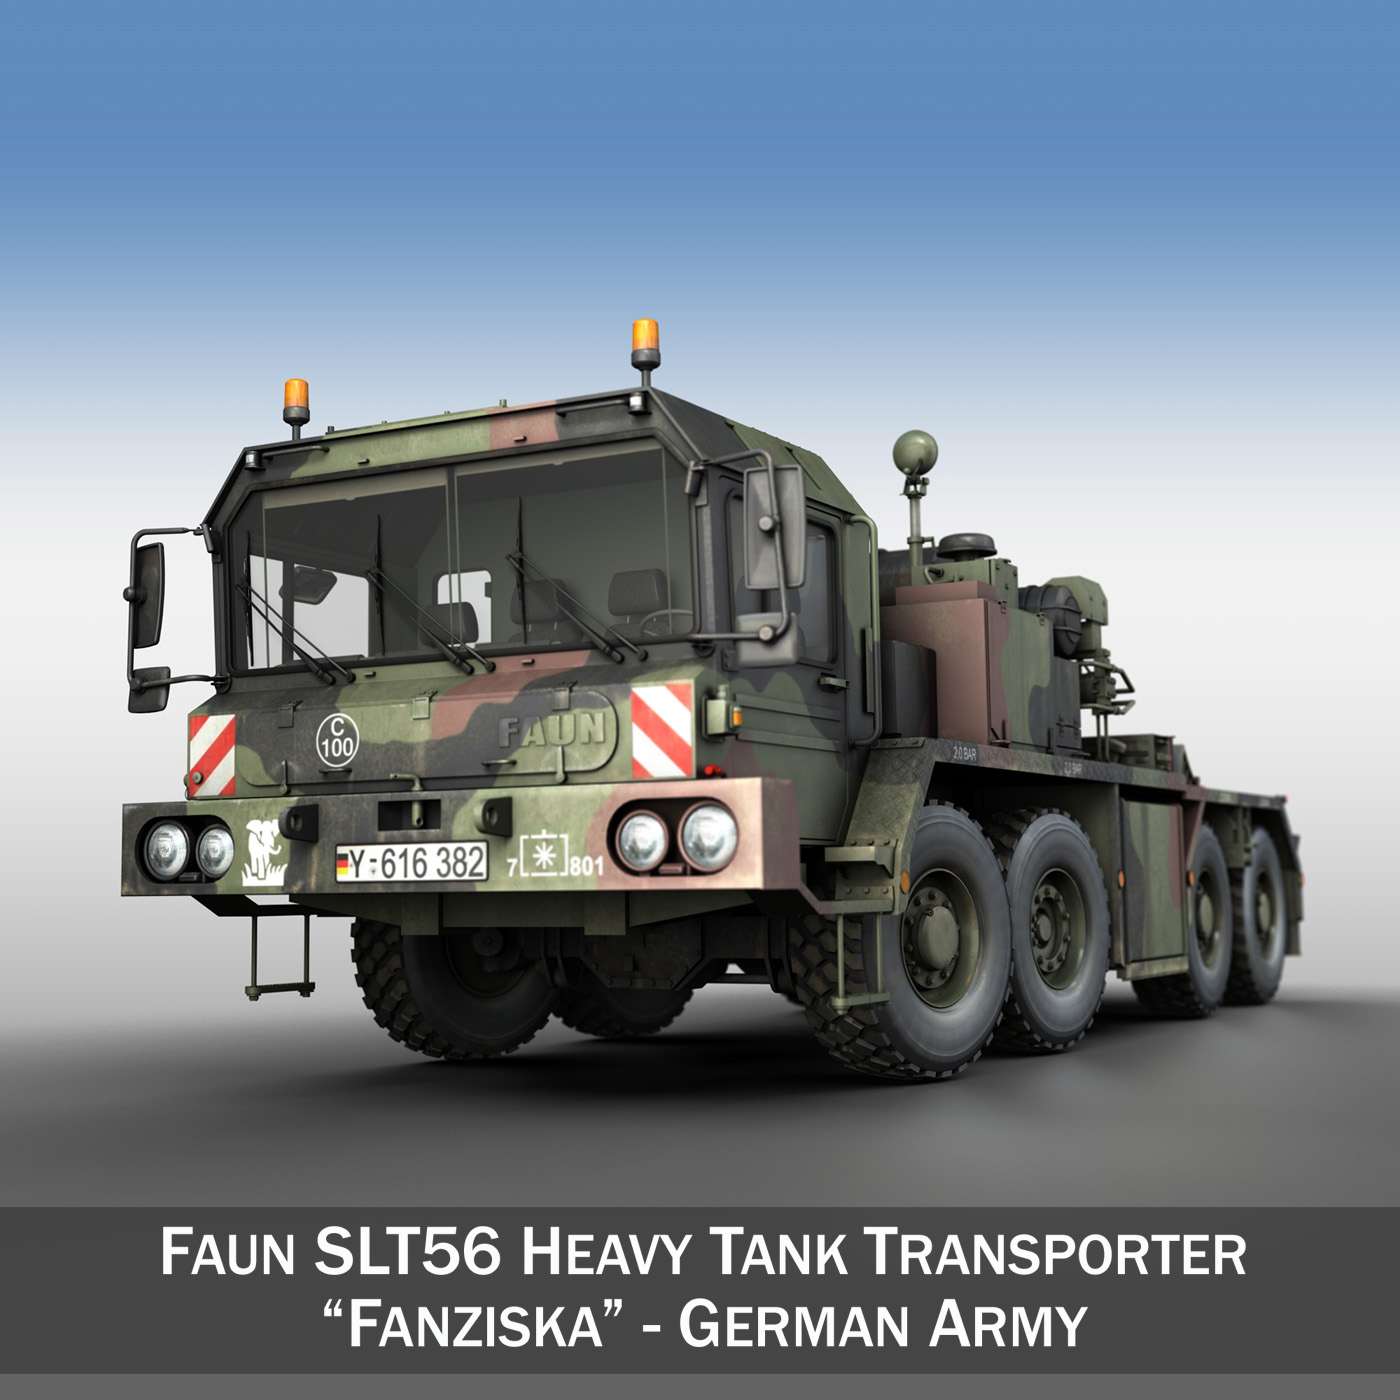 faun stl-56 transportues tank 3d model 3ds fbx c4d lwo obj 201912